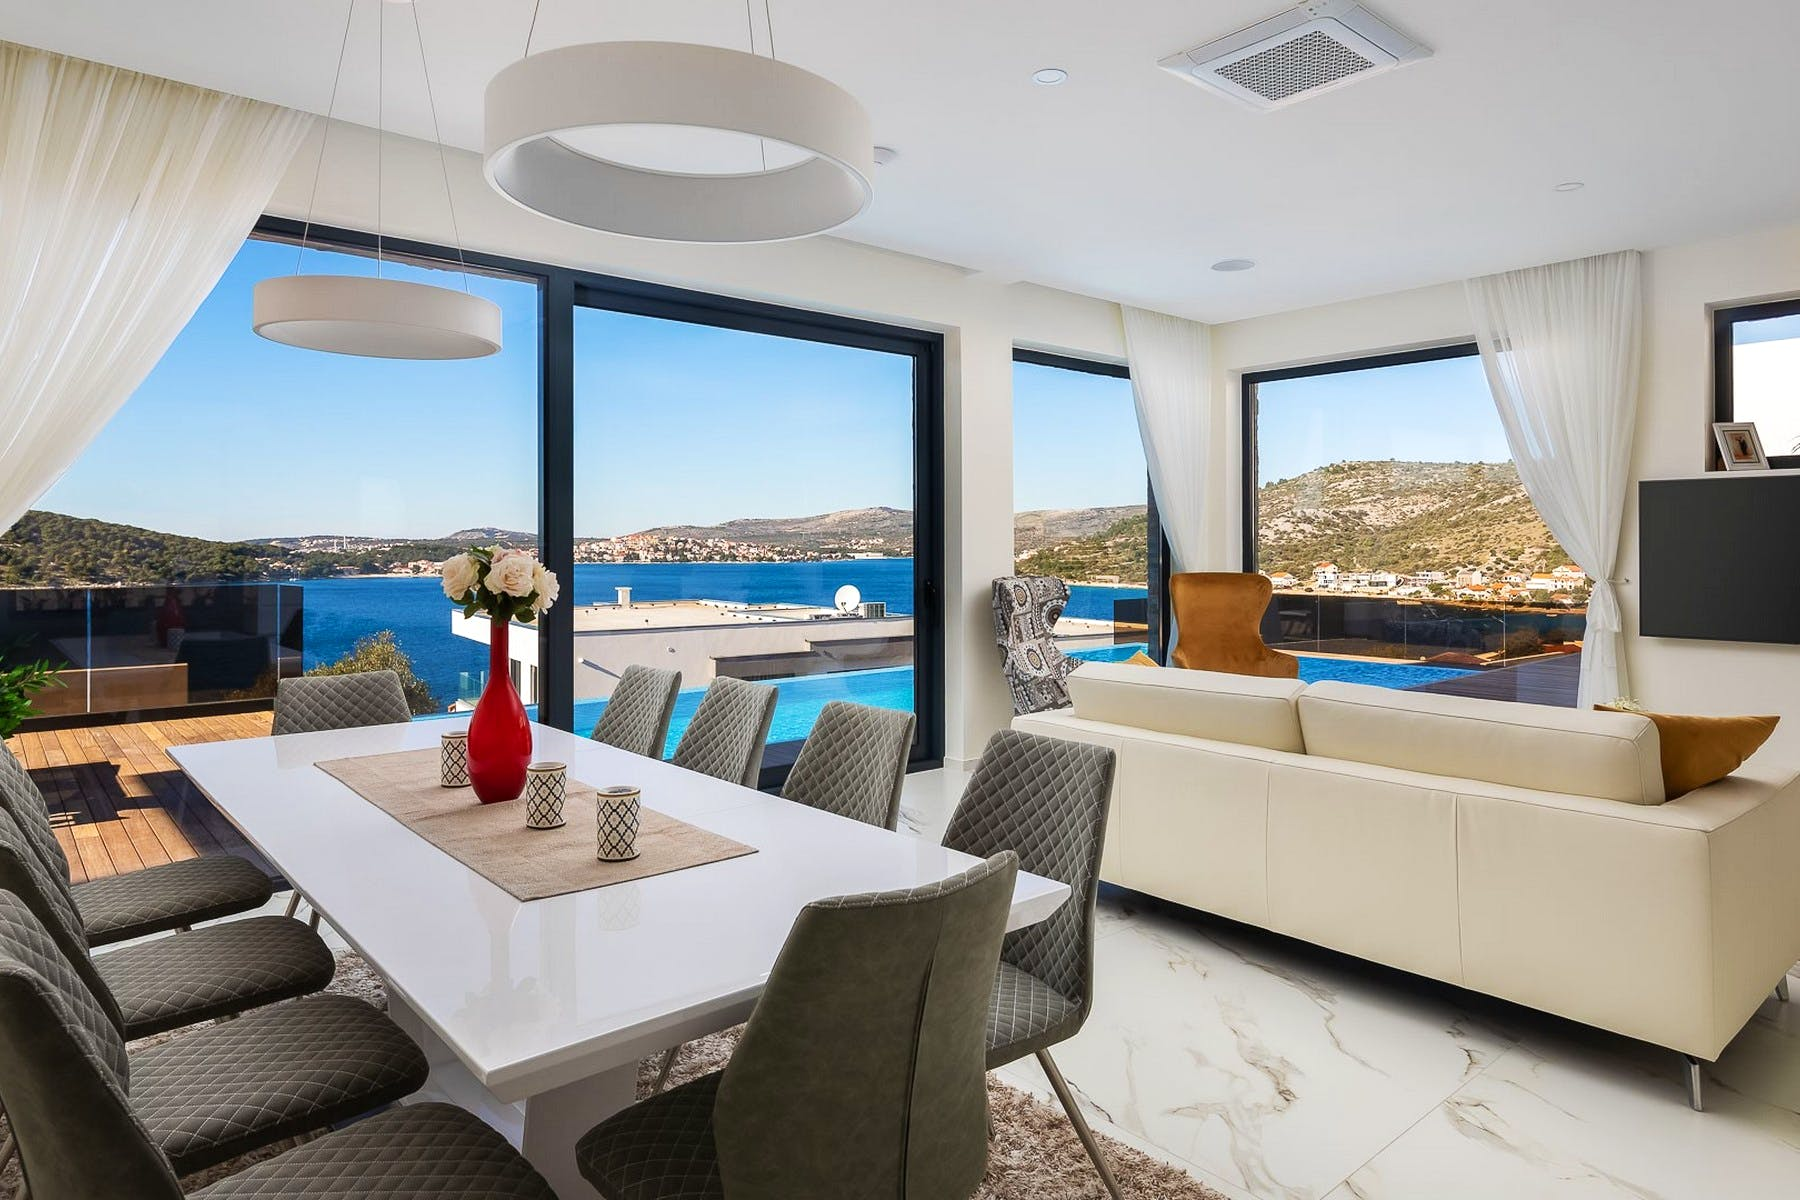 Open plan living area with idyllic sea view